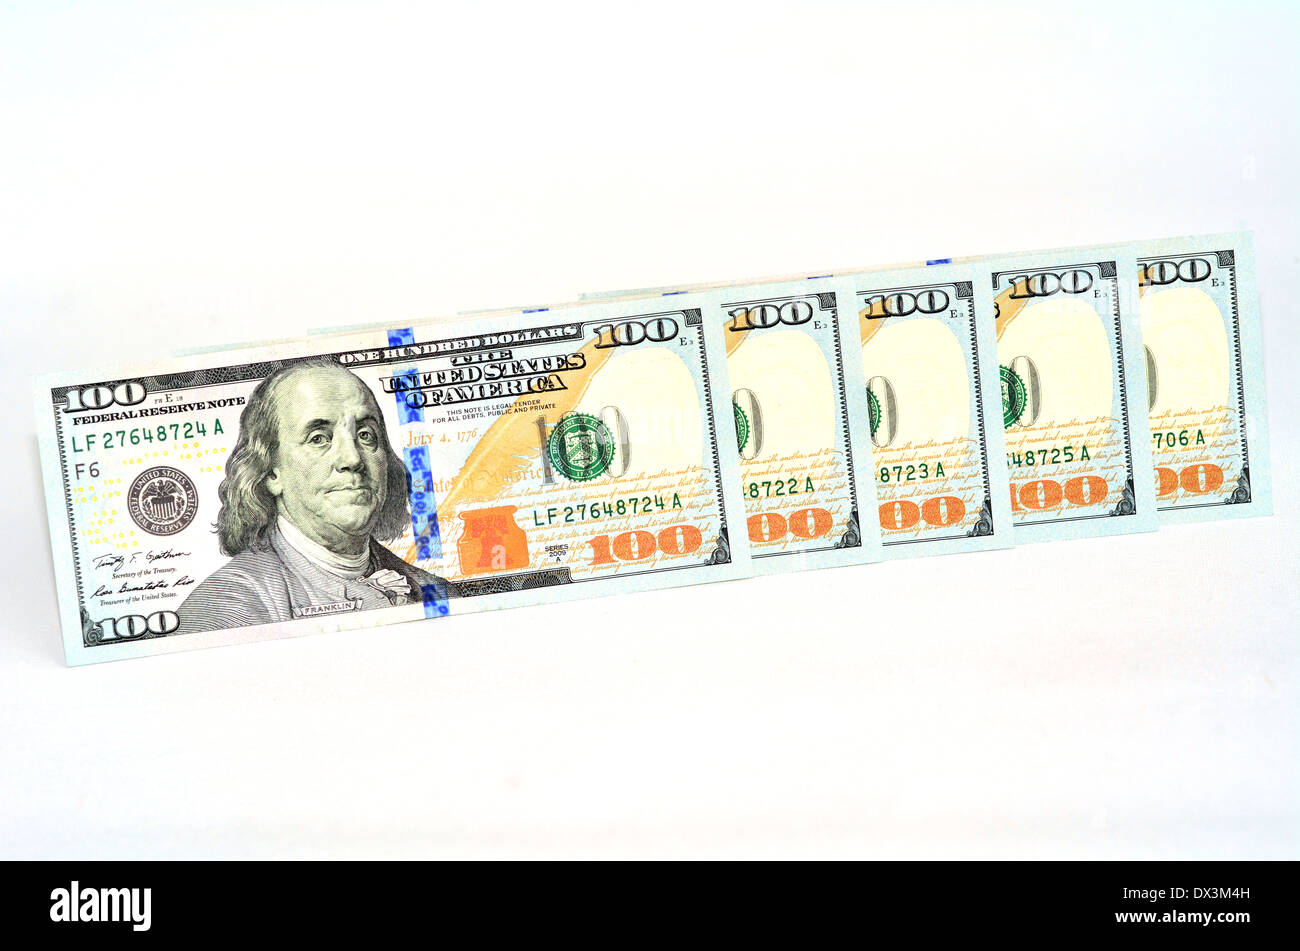 Newly designed U.S. one hundred dollar banknotes. Concept photo of money, banking ,currency and foreign exchange rates. - Stock Image